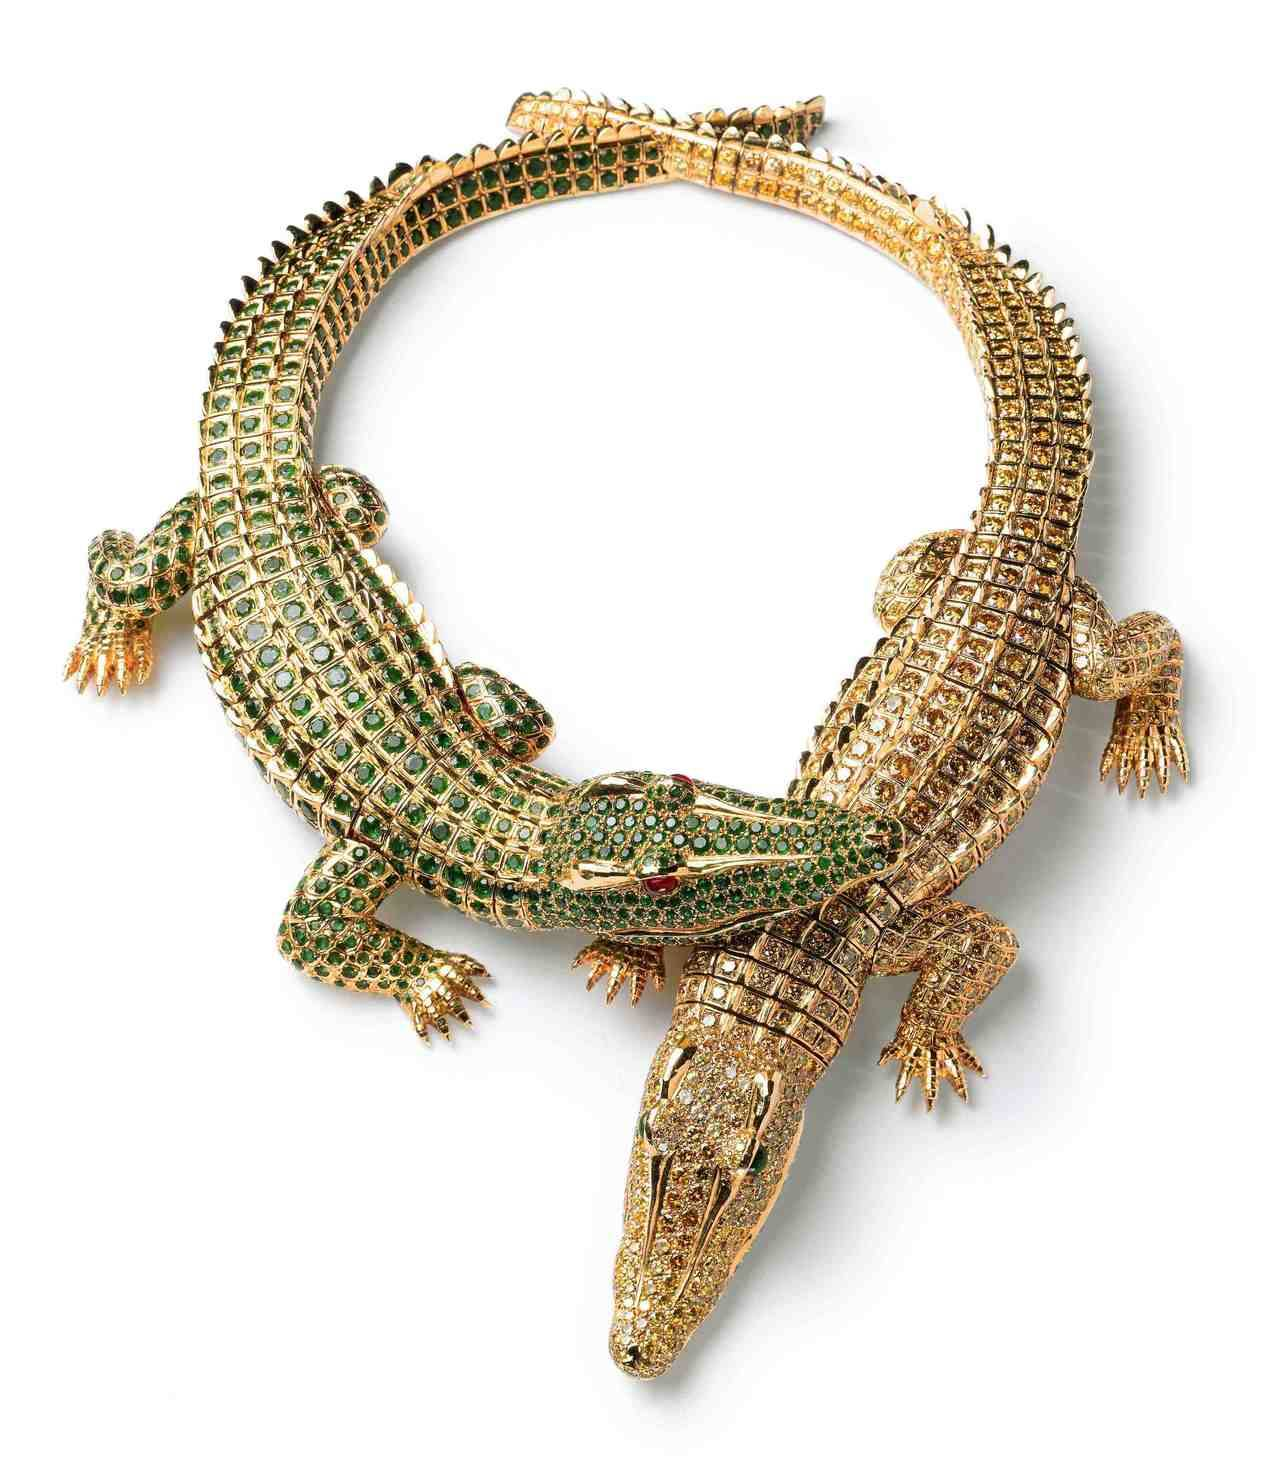 María Félix's famous double crocodile necklace she asked to Cartier to created for her in 1975. The bodies of the crocodiles contain 524.9 grams of gold, and are set with 1,023 yellow diamonds, 1,060 circular-cut emeralds and 2 rubies.